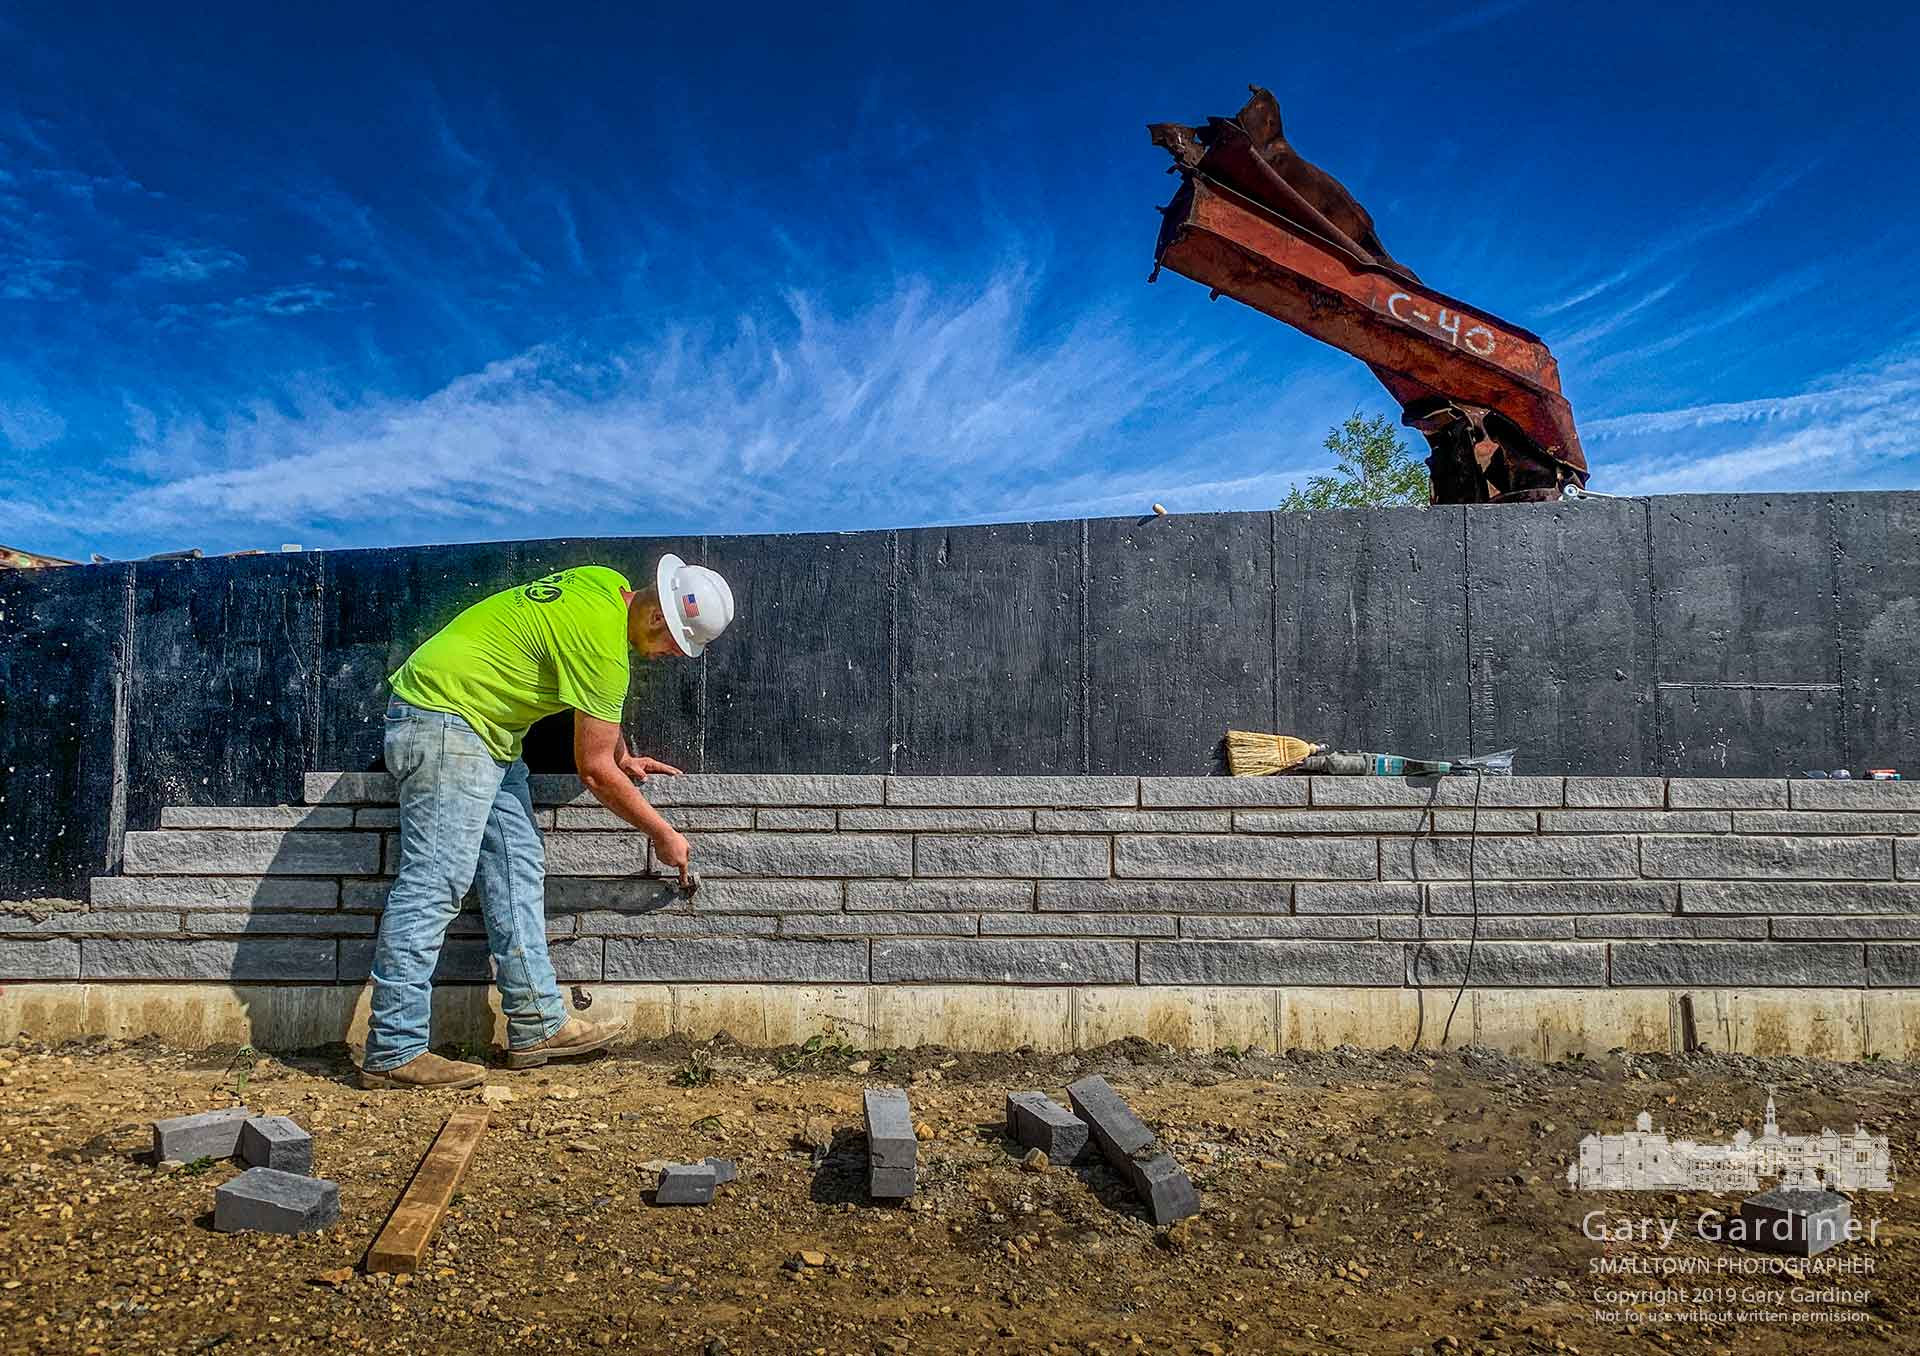 A brick mason uses a joint raker to set mortar into a section of the decorative wall being built at the front of Responders Park. My Final Photo for July 11, 2019.